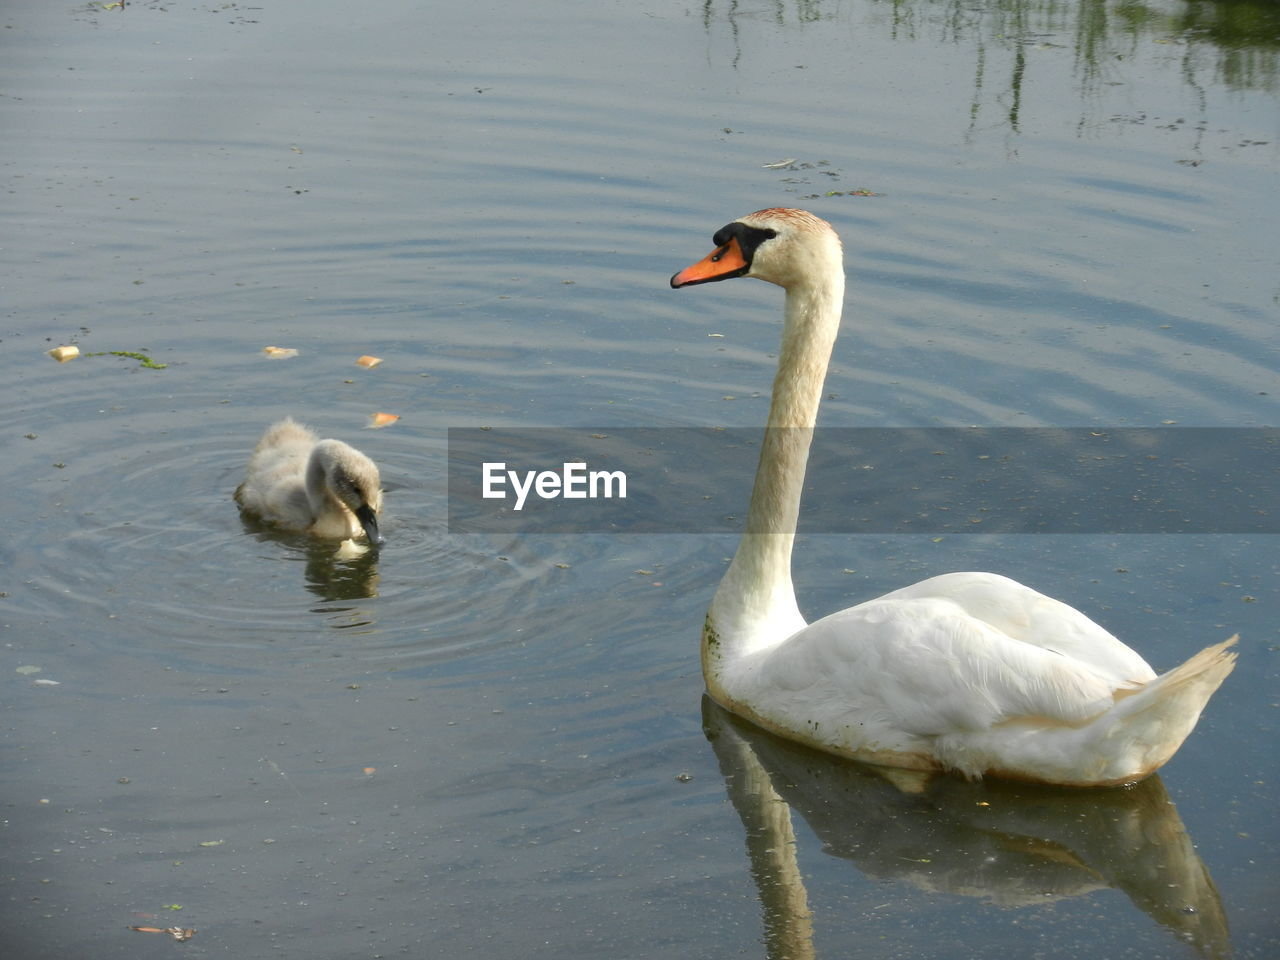 High Angle View Of Mute Swan Swimming By Cygnet On Lake